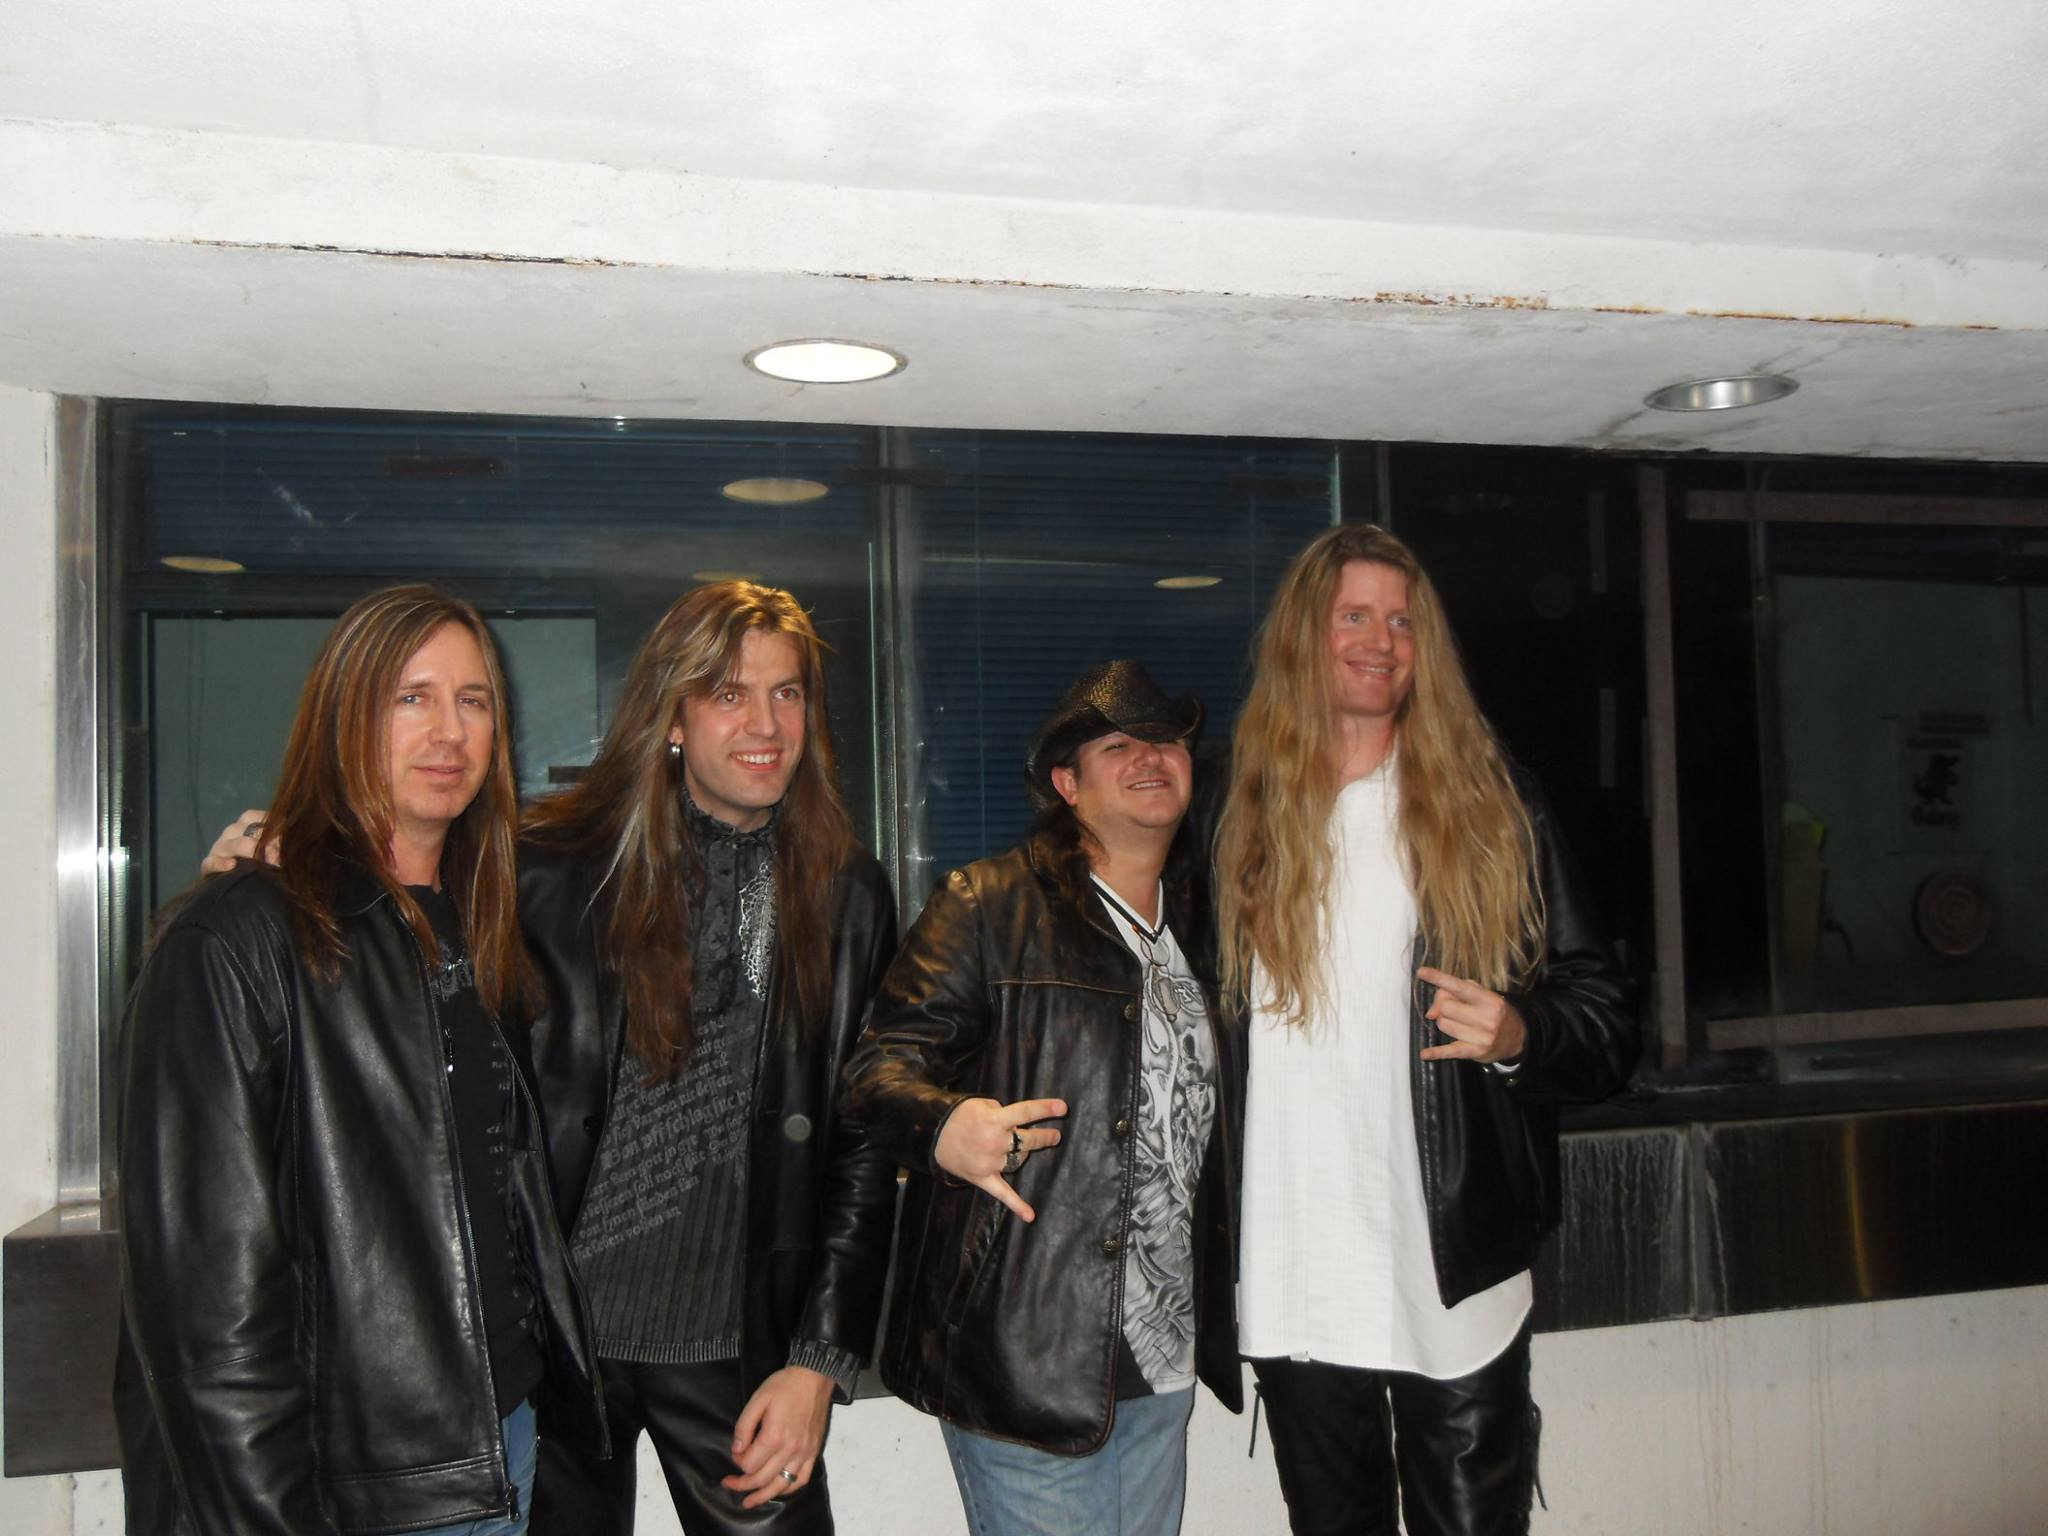 Tom McDyne - Tracy Shell, Armand Melnbardis, Morgan Ashley (DORIAN) and Tom backstage at a Trans-Siberian Orchestra concert